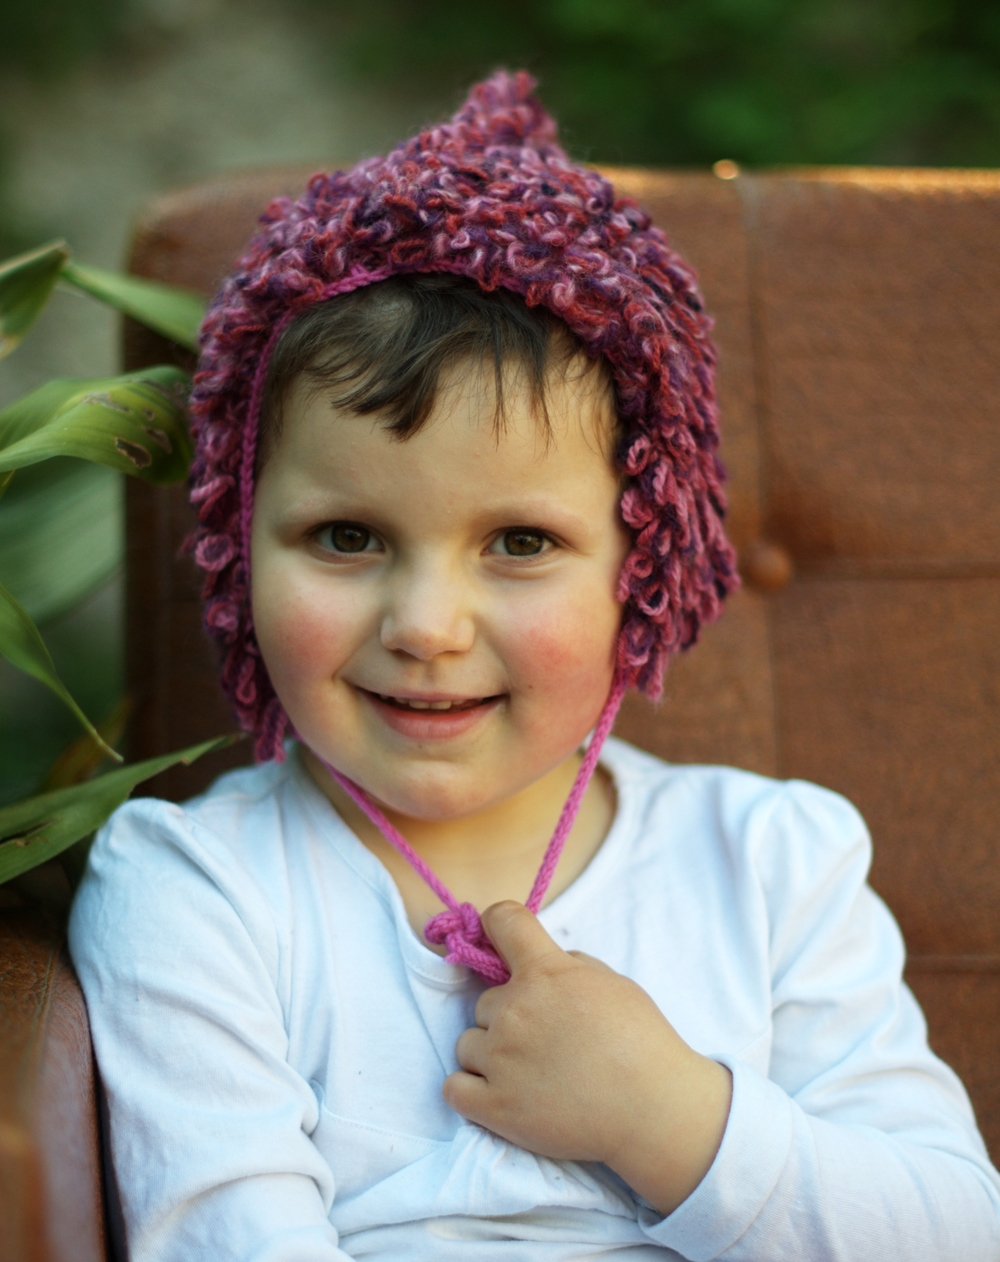 Loopy childs bonnet knitting pattern